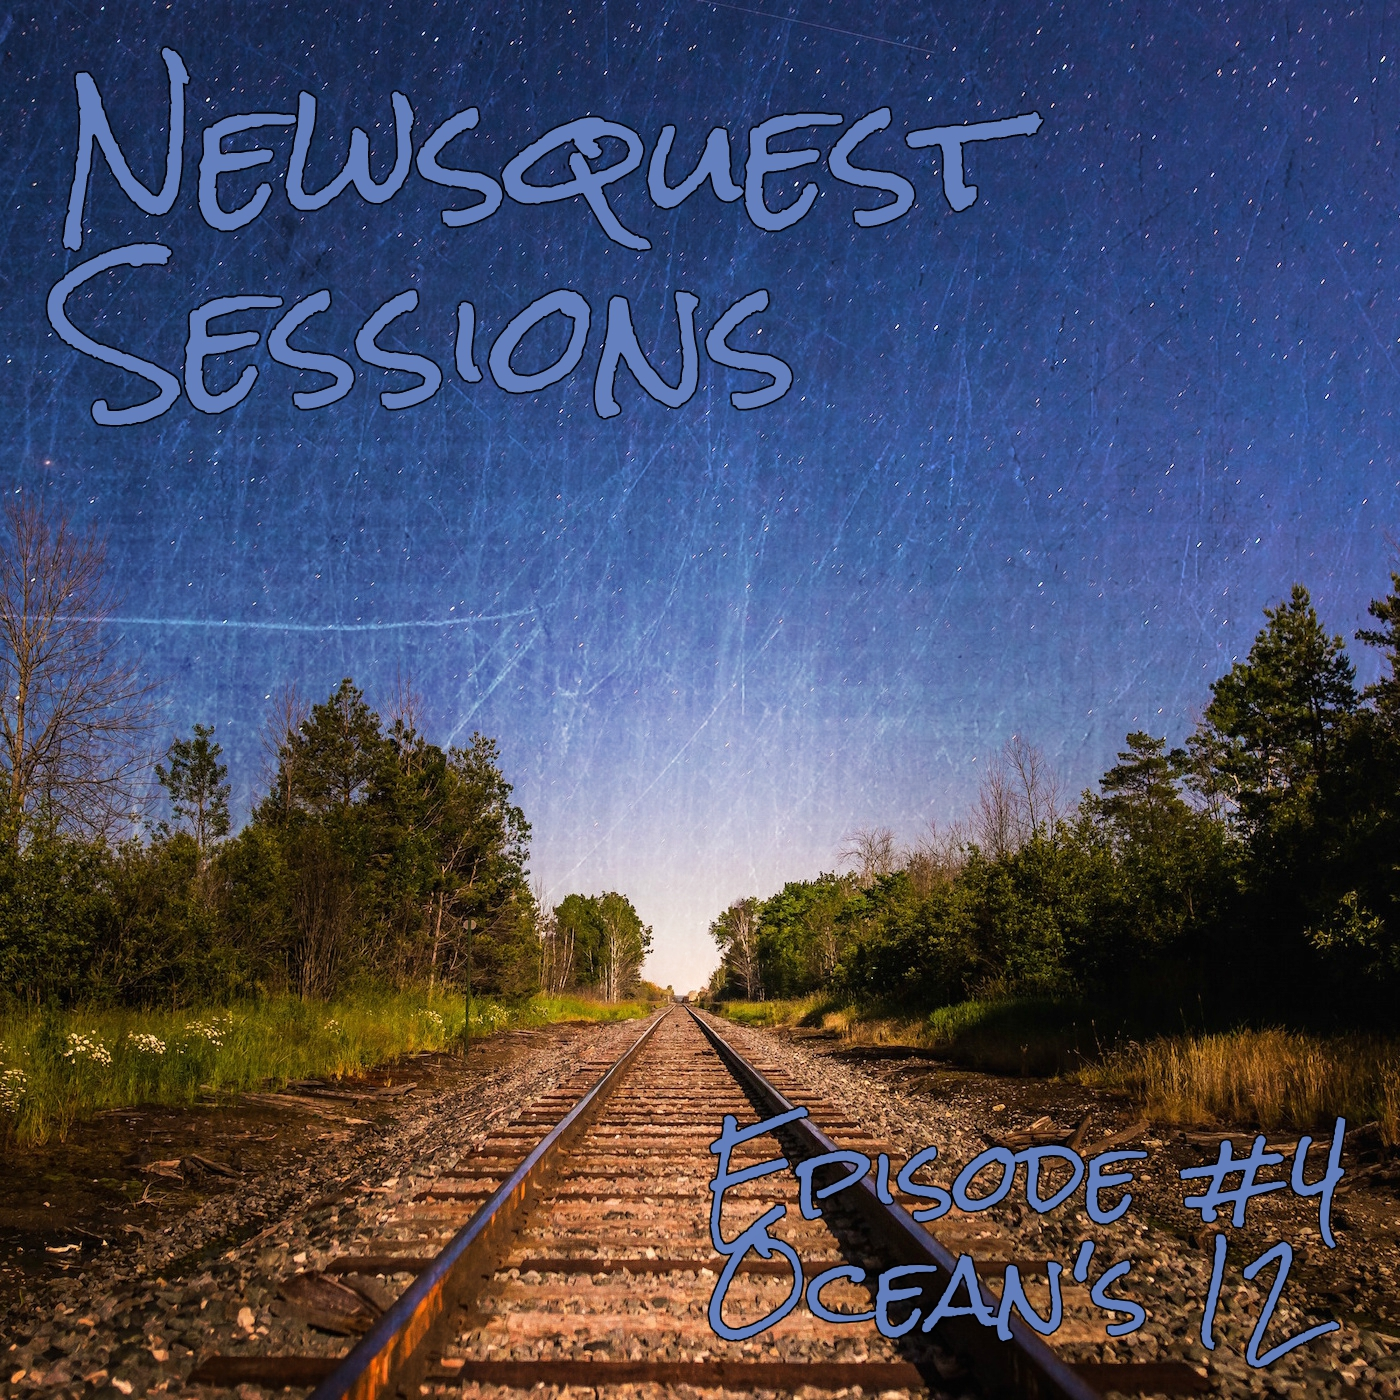 Newsquest Sessions